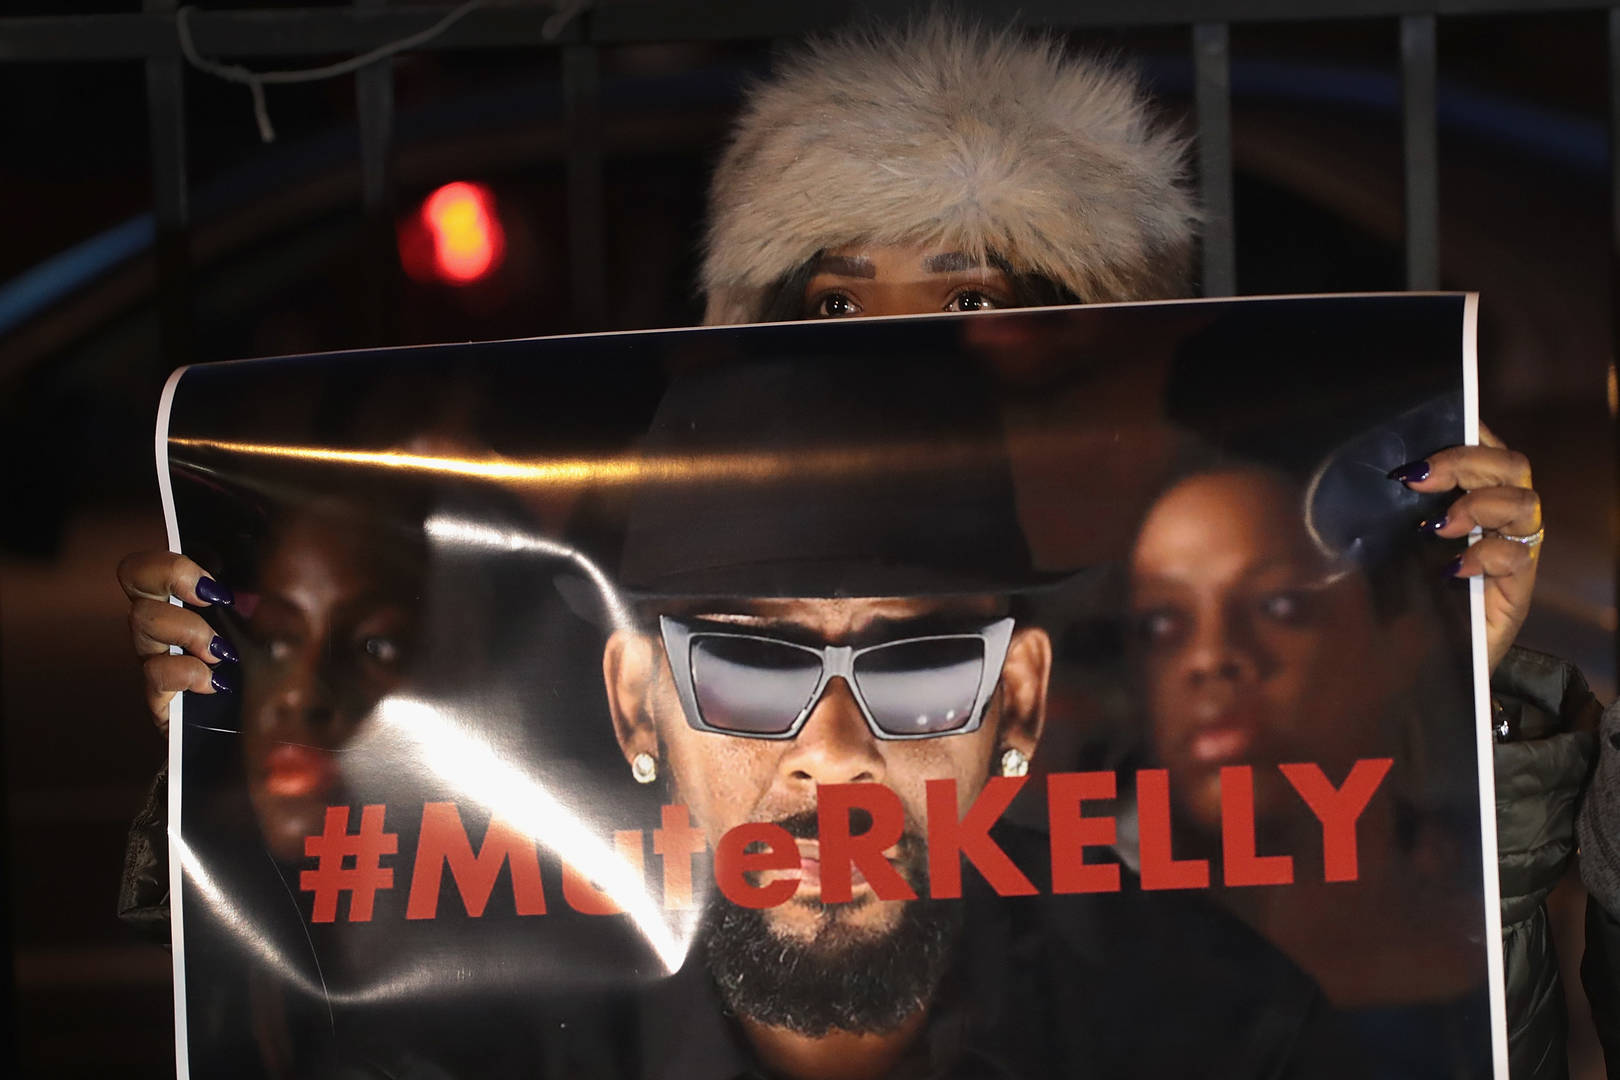 Kelly Visits Chicago McDonald's After Release On Bail